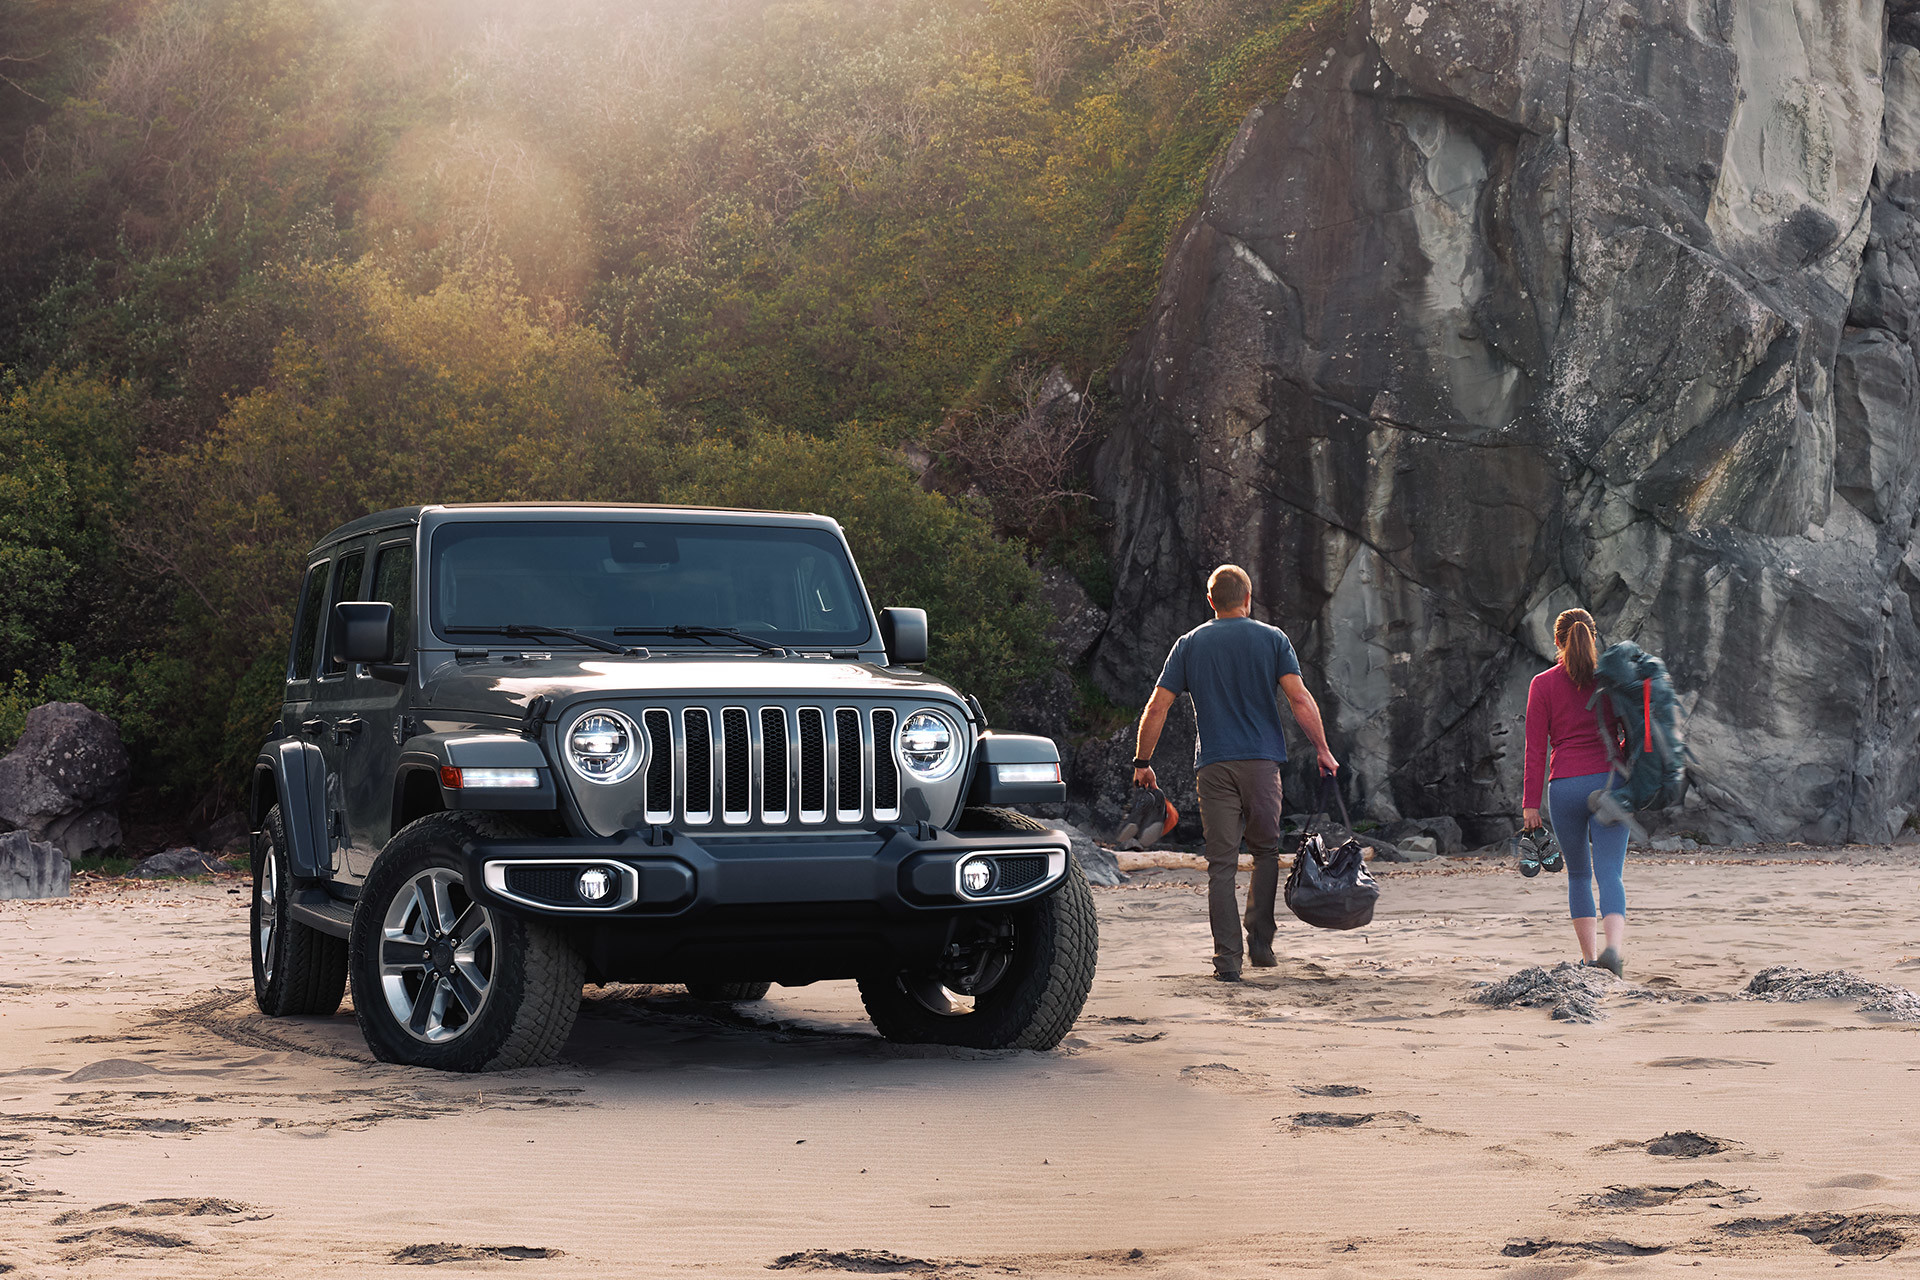 The 2020 Jeep Wrangler parked on a sand beach beside two people